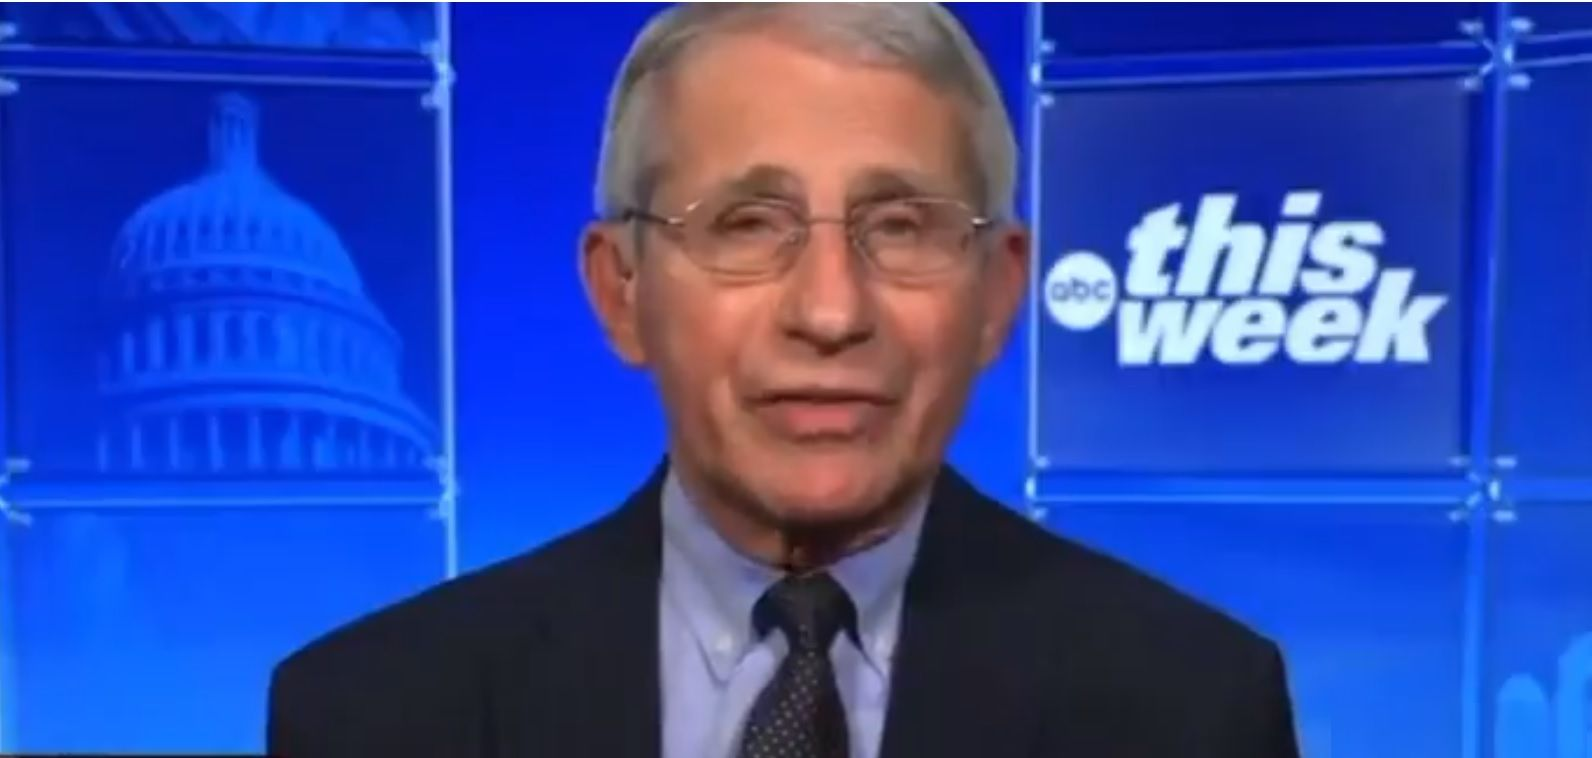 WATCH: Dr. Fauci previews upcoming CDC guidelines on masking outdoors